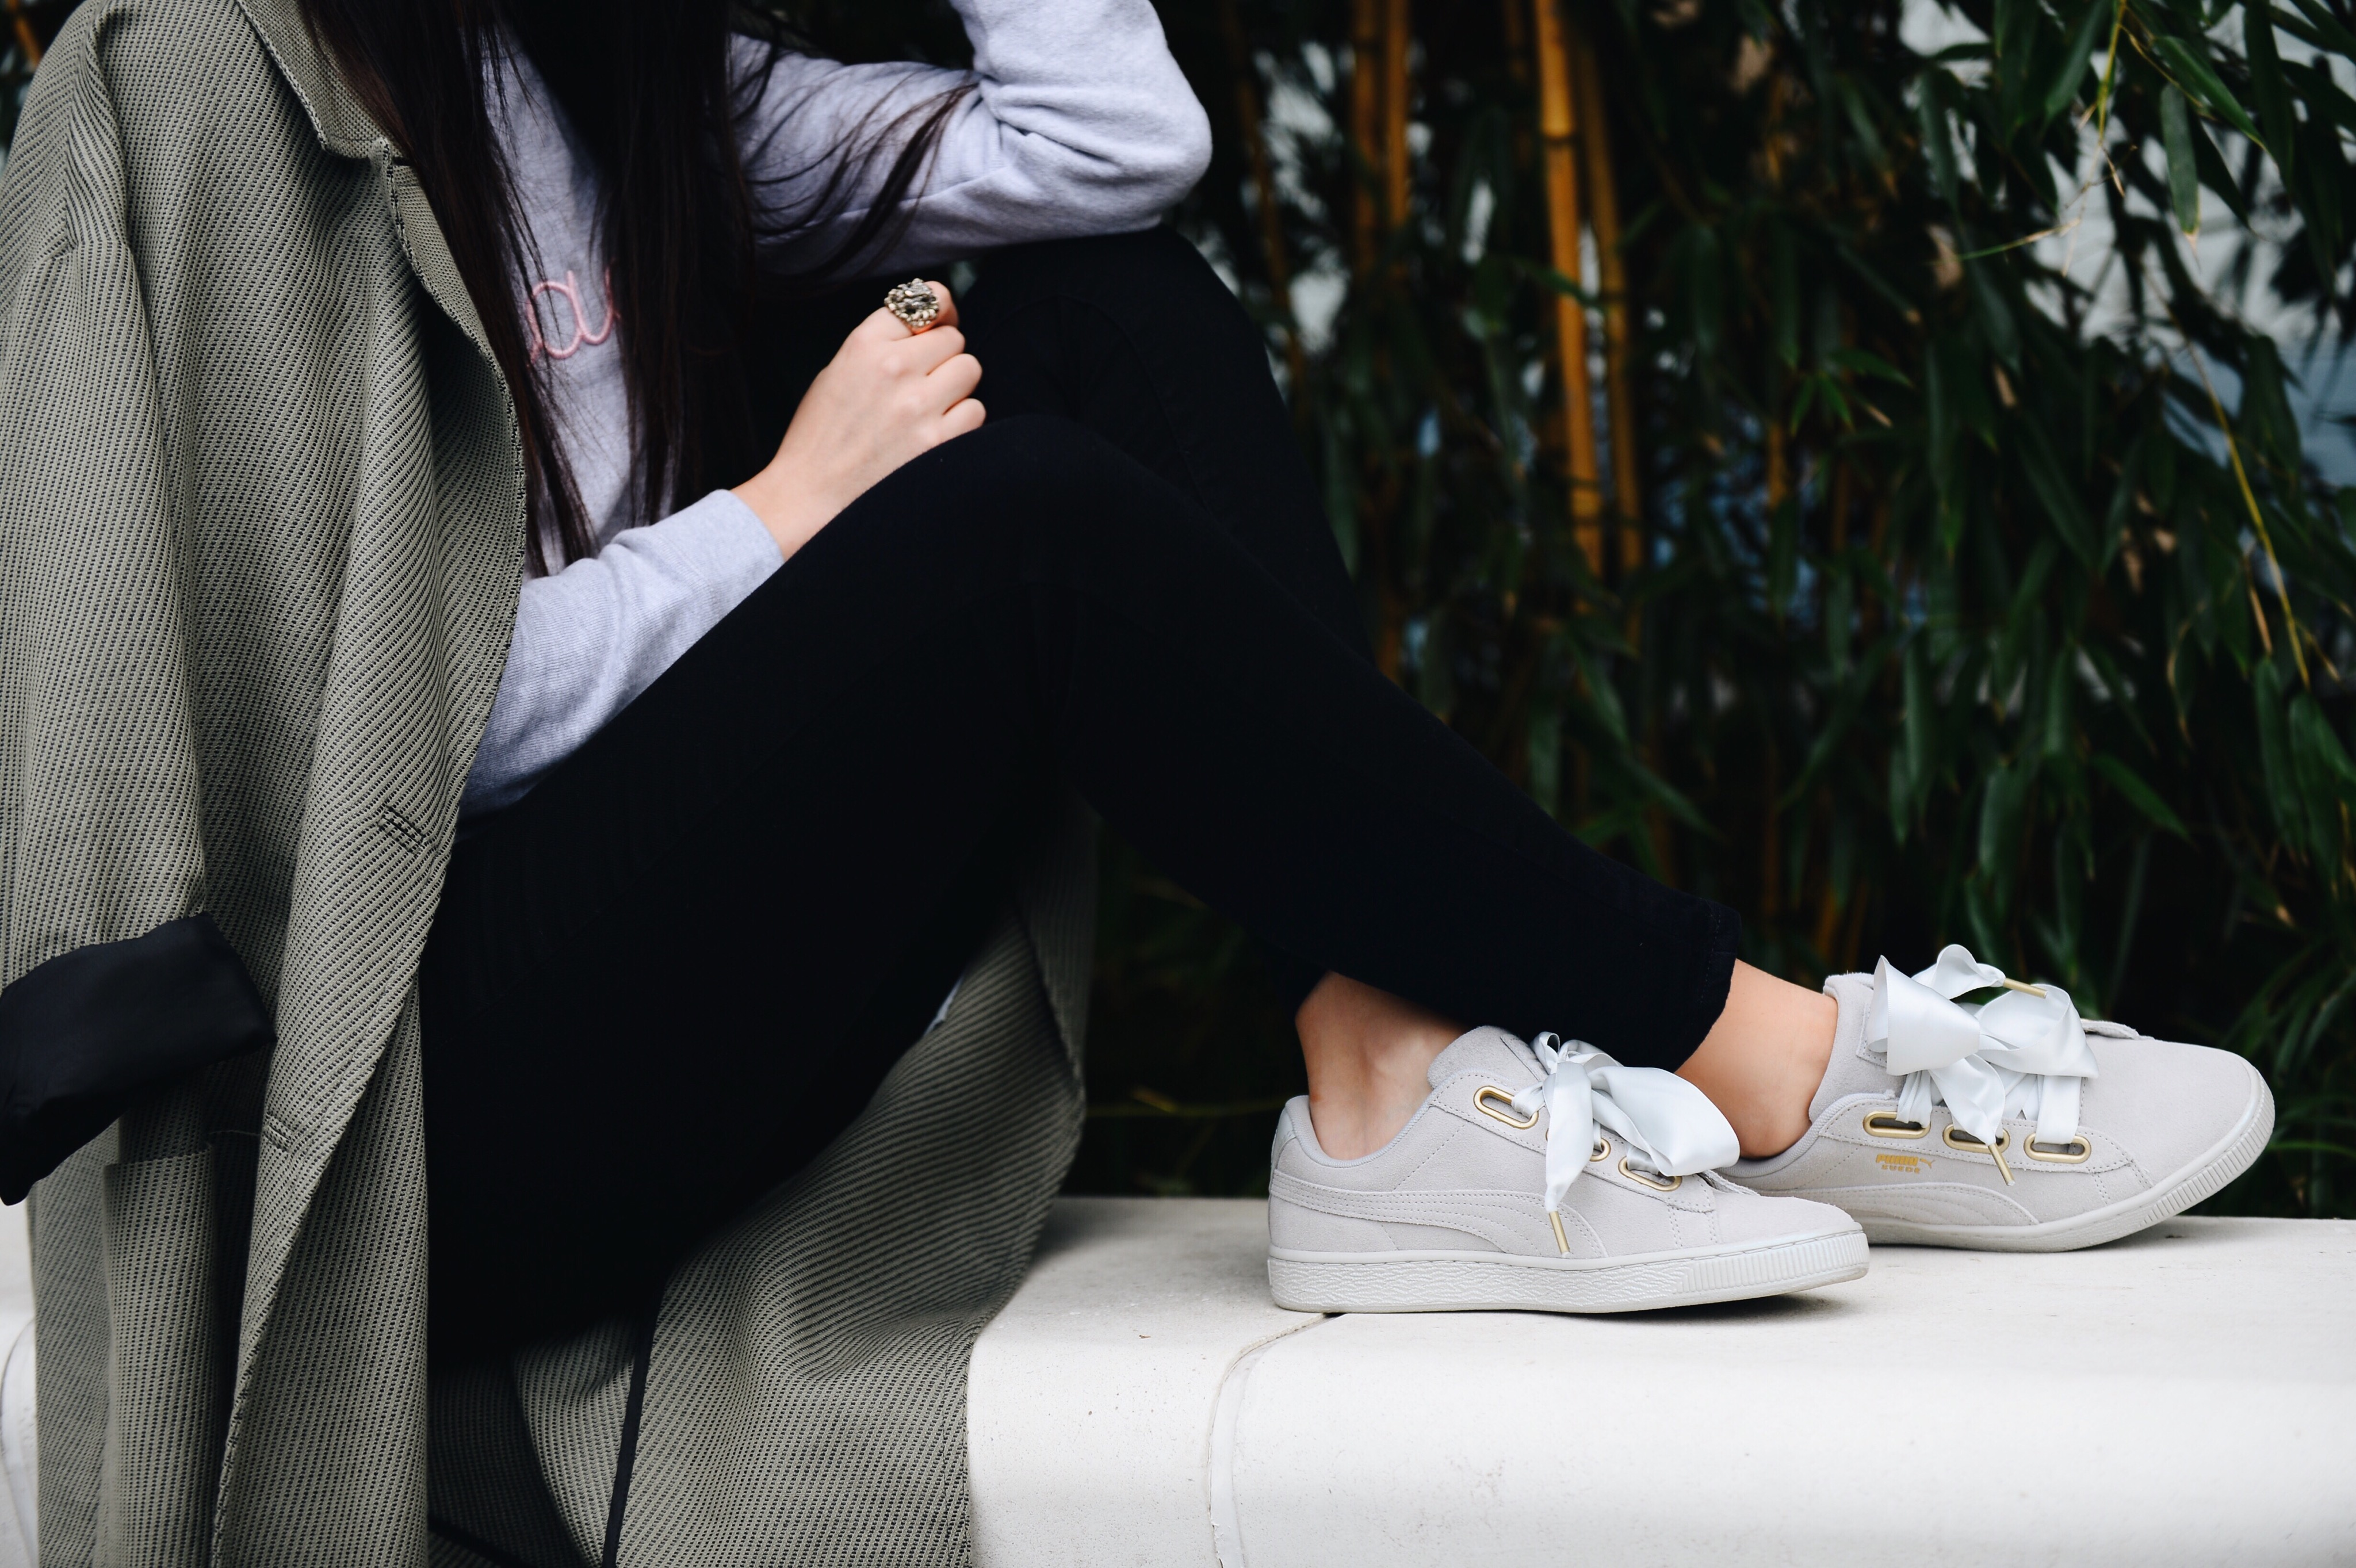 Levi's jeans and Puma sneakers